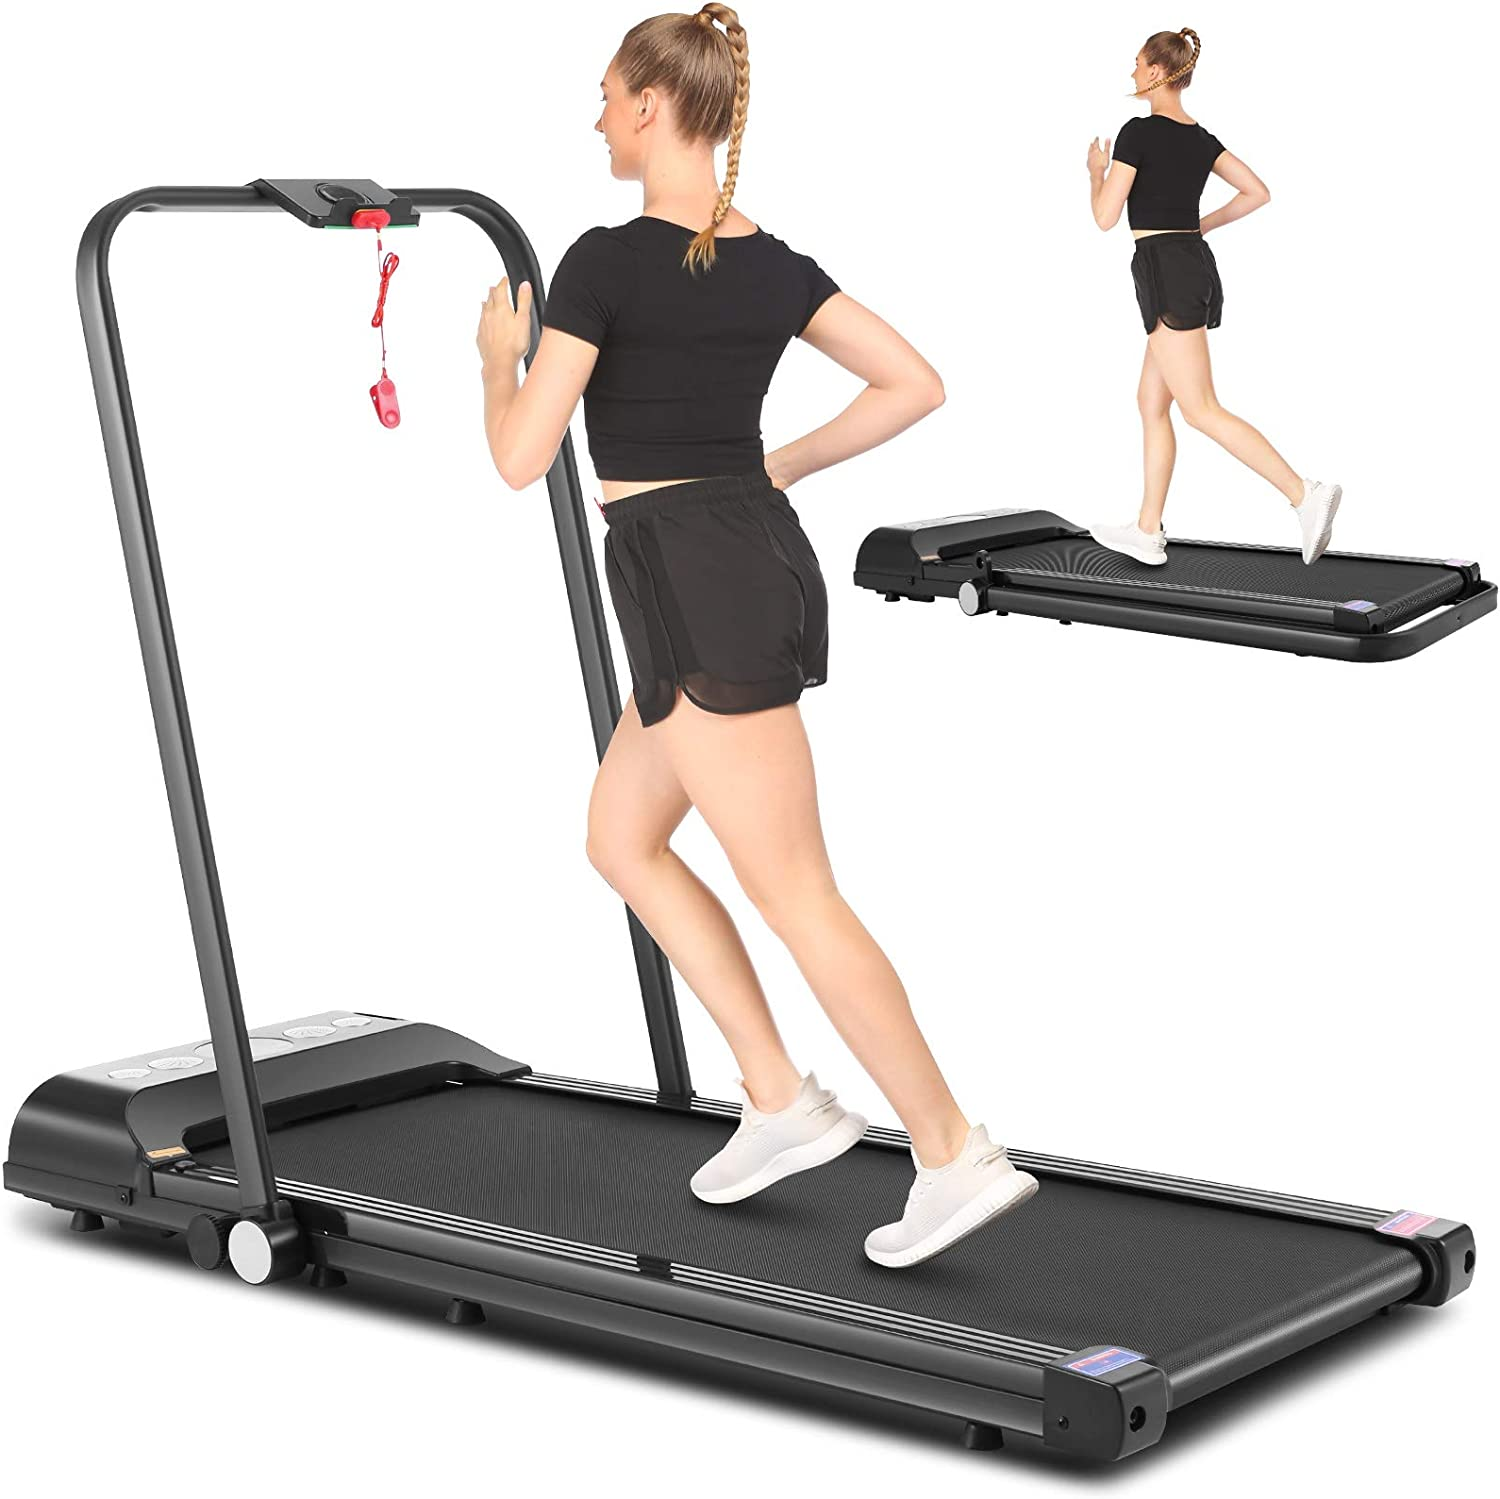 High quality new National uniform free shipping SYTIRY Desktop Foldable Treadmill Walking 2-in-1 Home Machine